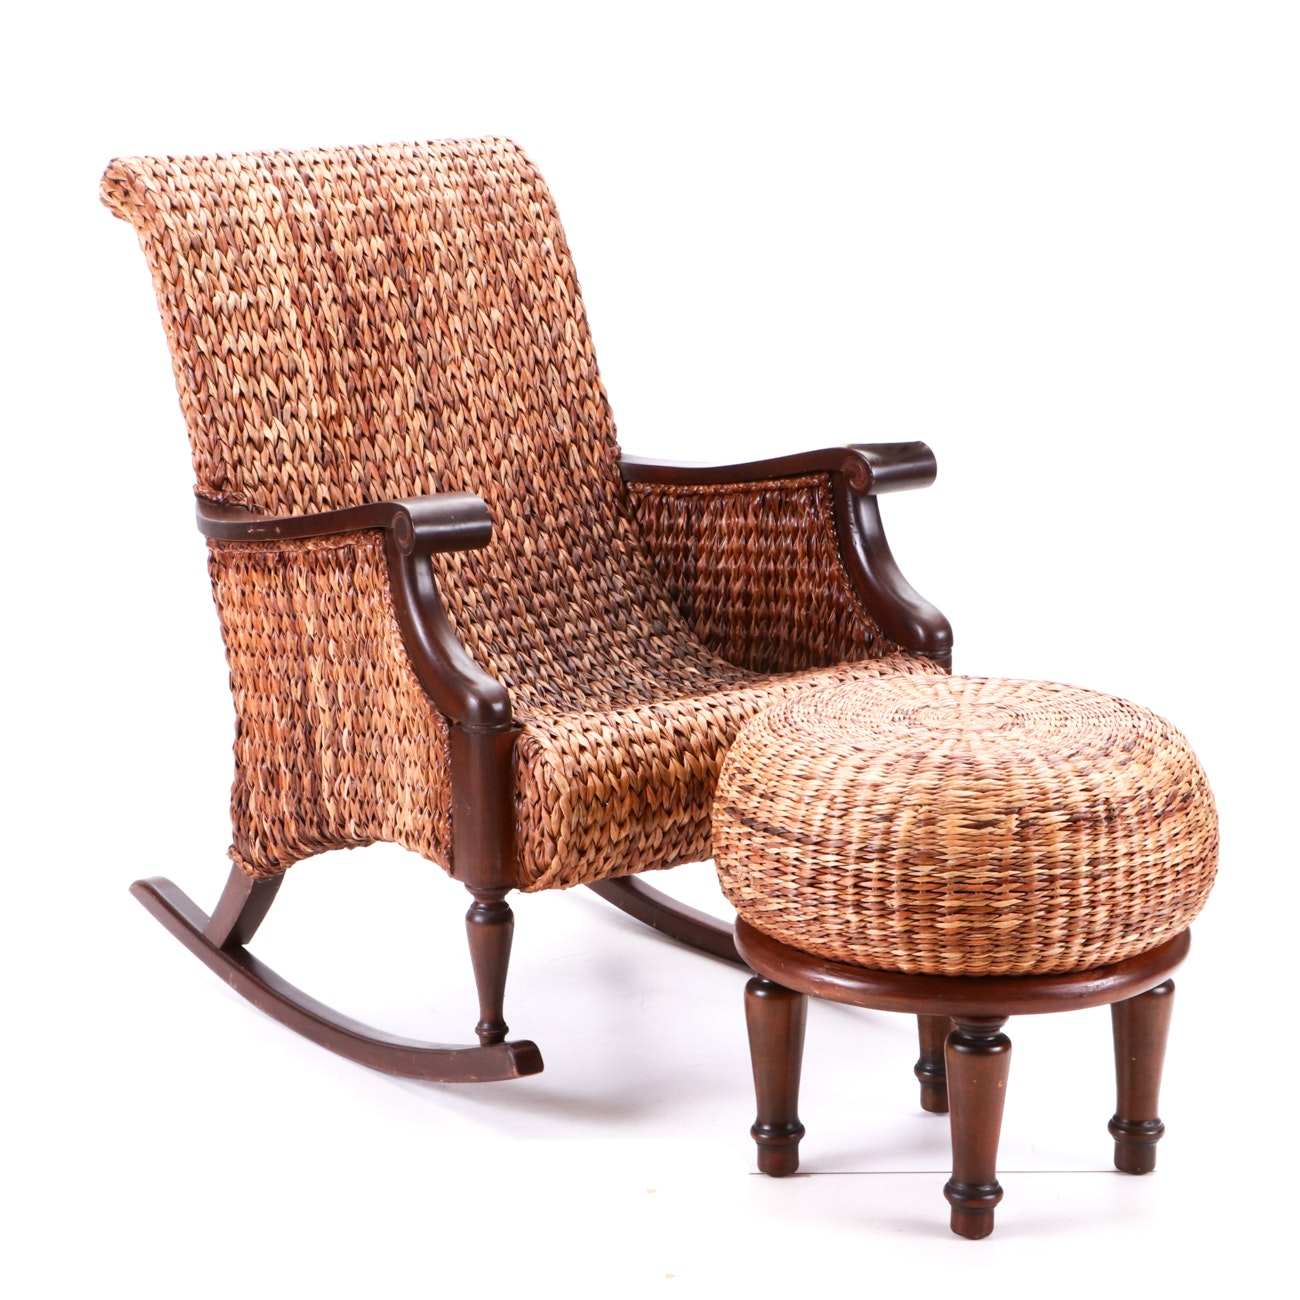 Woven Water Hyacinth Rocking Chair and Bauer International Rattan Foot Stool